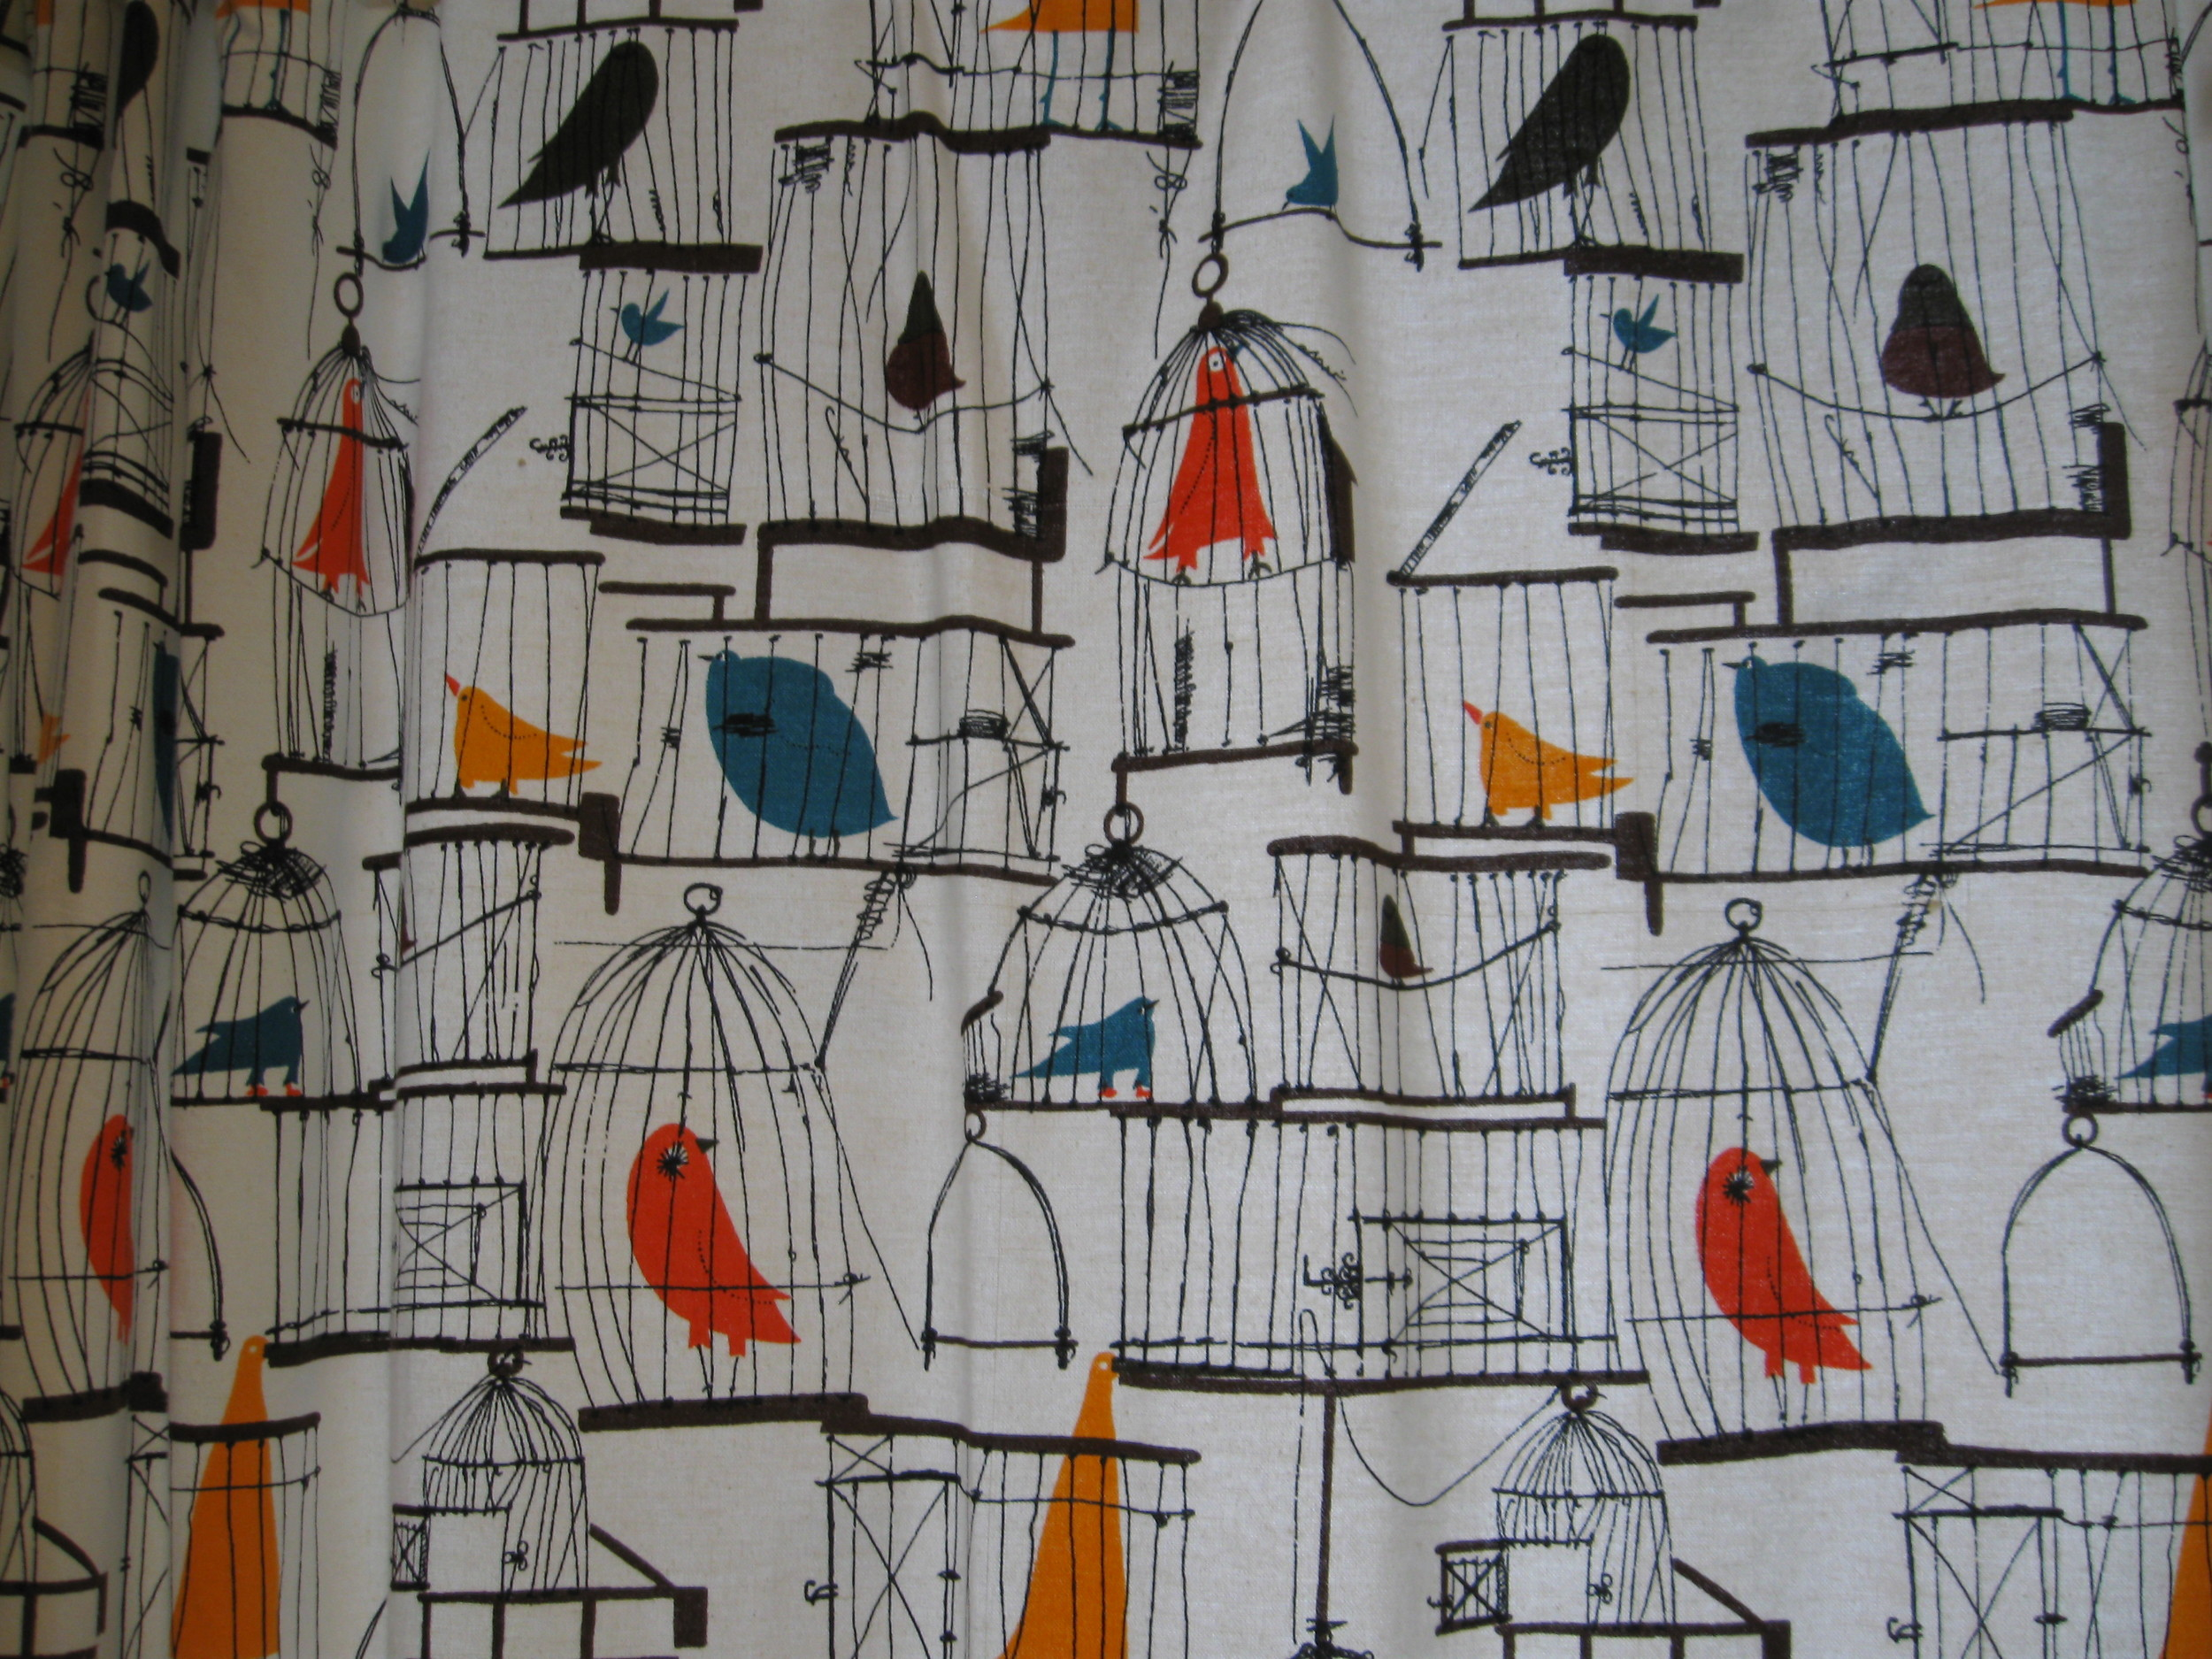 A pic of the bird patterned shower curtain